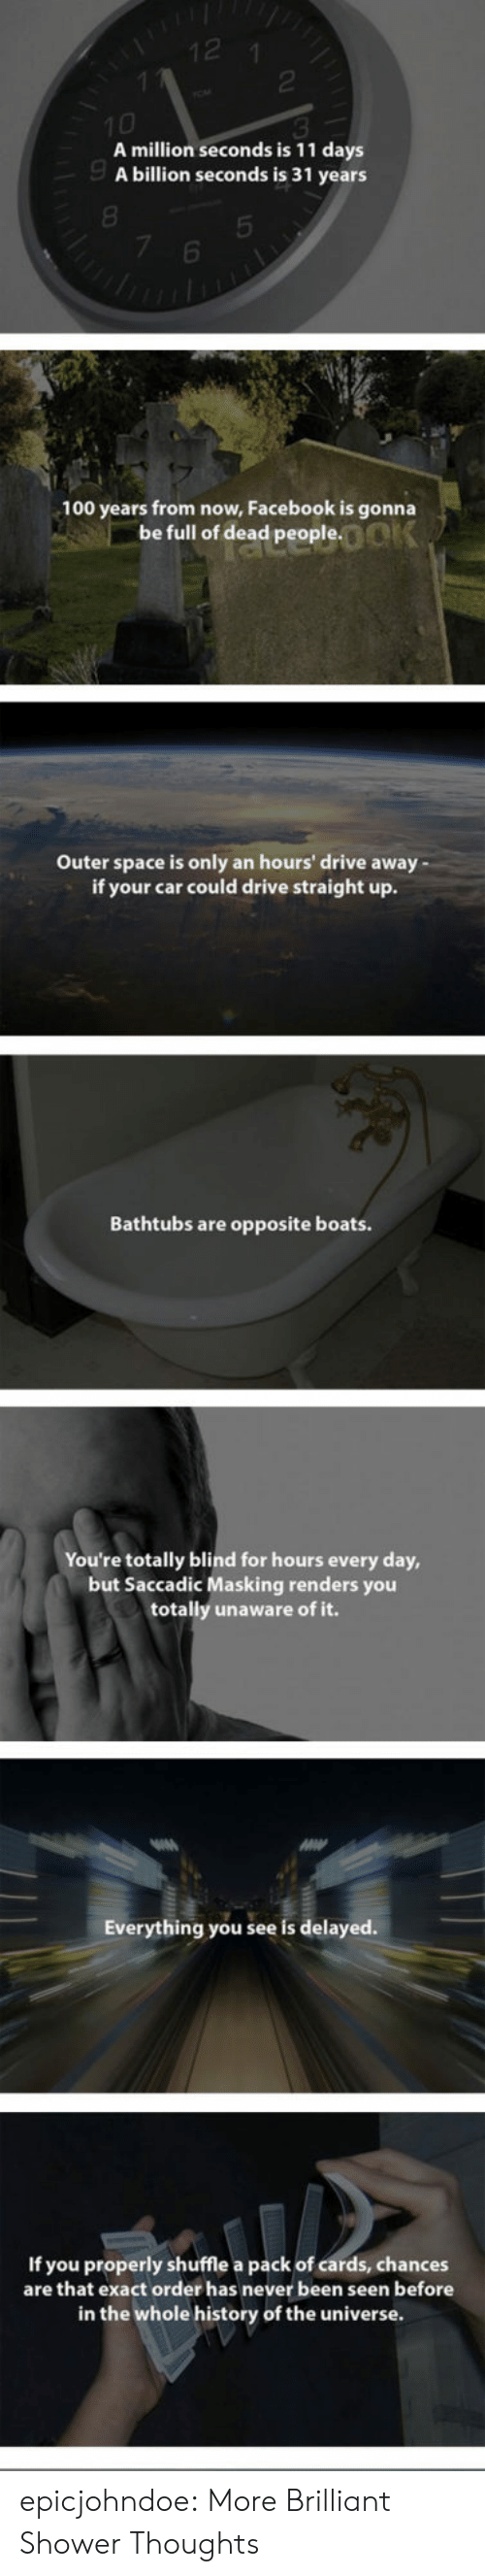 Facebook, Shower, and Shower Thoughts: 2  A million seconds is 11 days  billion seconds is 31 years  9  8  6  oli f deadp  100 years from now, Facebook is gonna  be full of dead people  ook  Outer space is only an hours' drive away  if your car could drive straight up.  Bathtubs are opposite boats.  You're totally blind for hours every day,  but Saccadic Masking renders you  totally unaware of it.  MAN  Everything you see is delayed  If you properly shuffle a pack of cards, chances  are that exact order has never been seen before  in the whole history of the universe. epicjohndoe:  More Brilliant Shower Thoughts